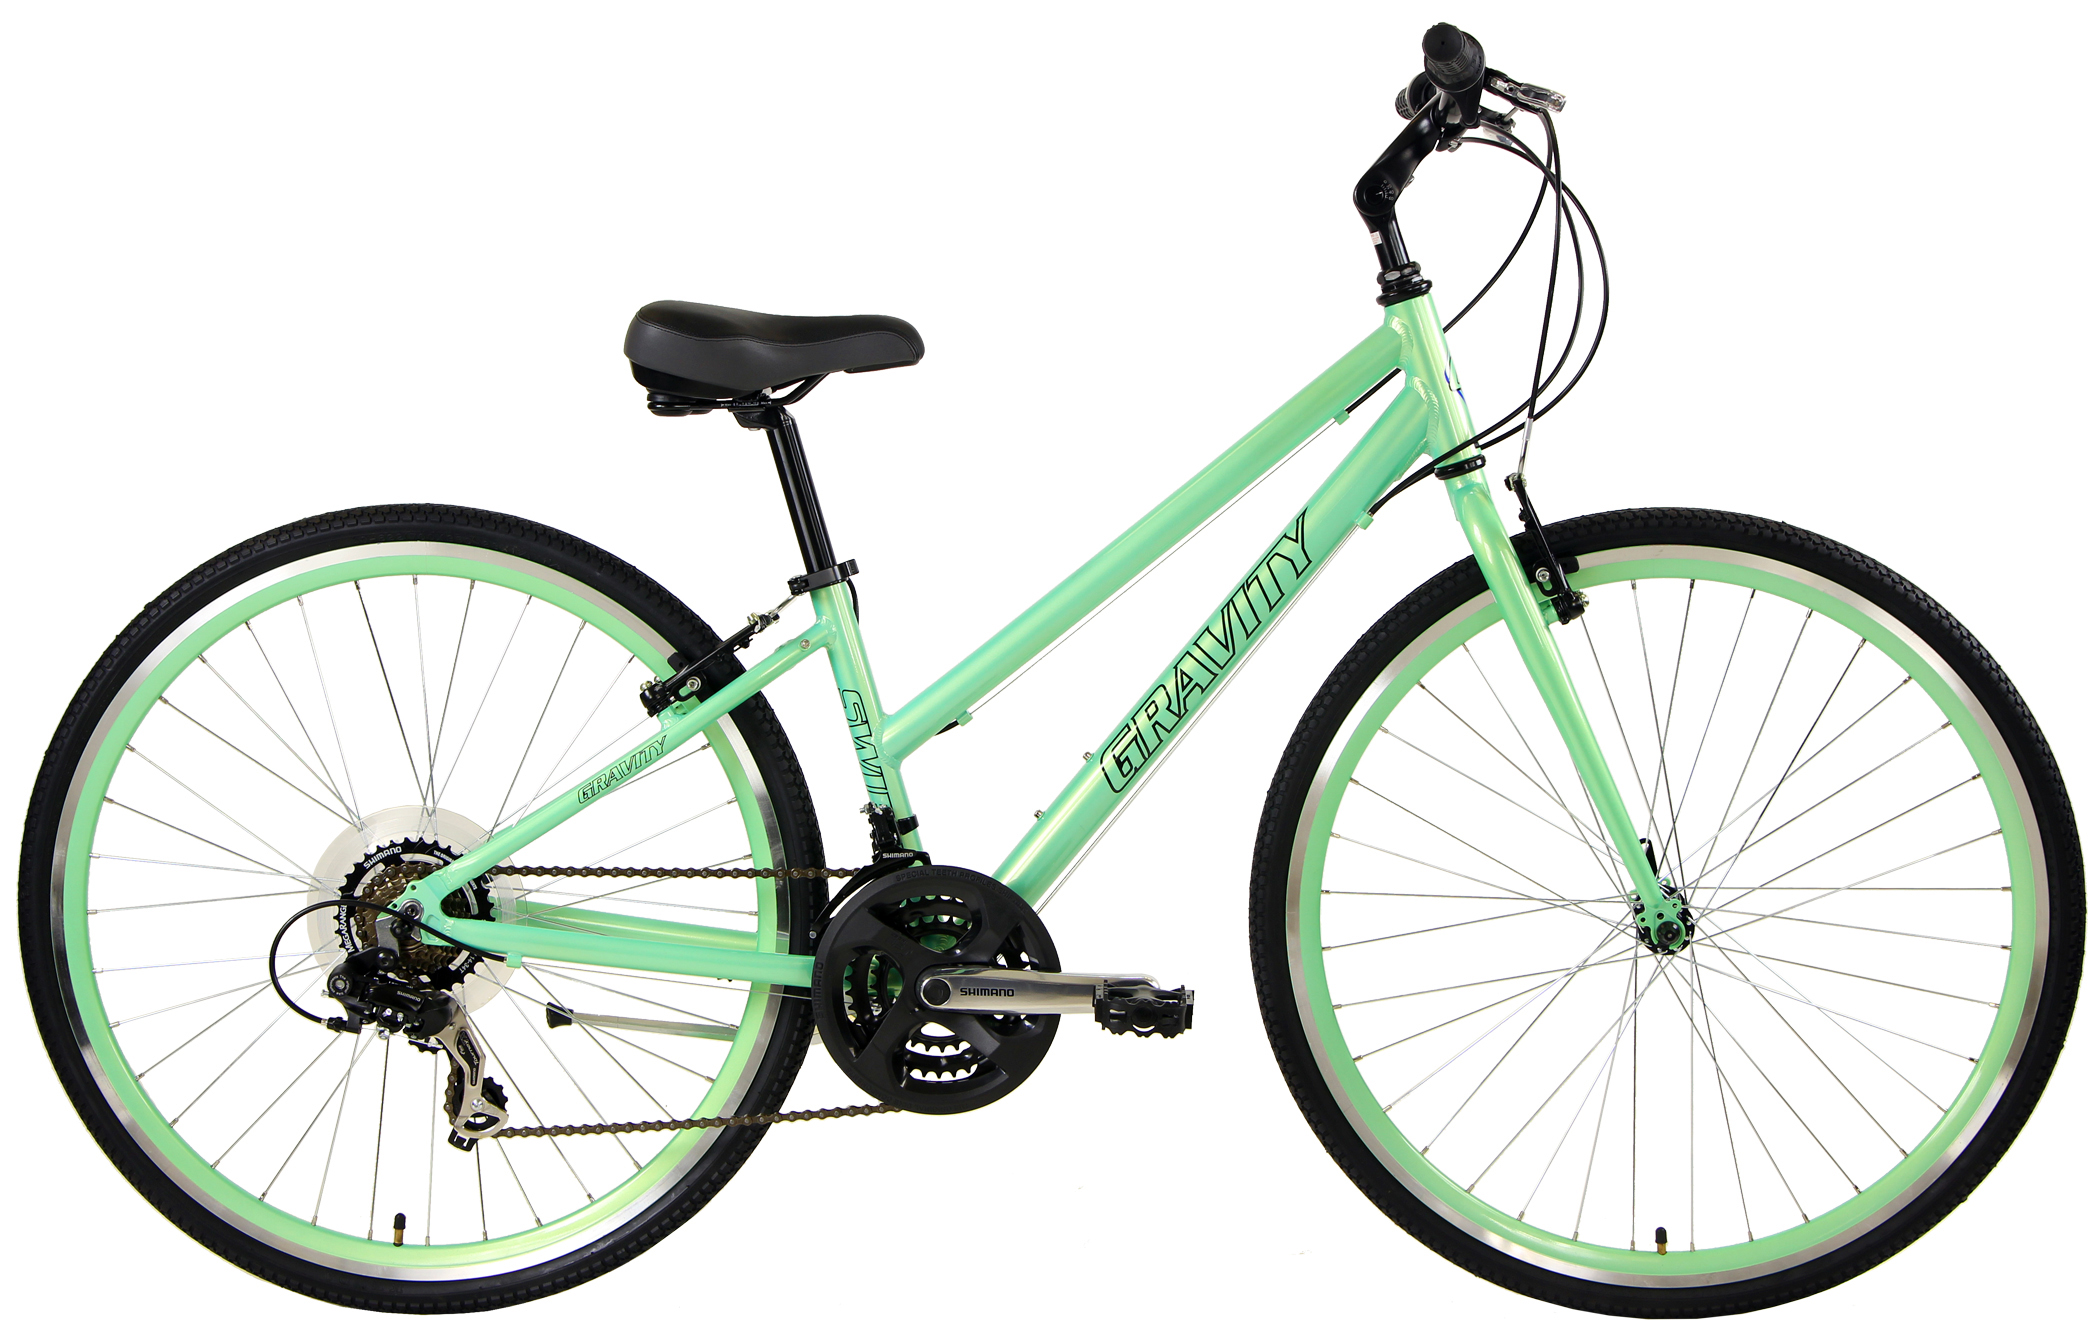 SWIFT 21 LTD - 21sp SHIMANO ALUMINUM ADVENTURE HYBRID BIKE